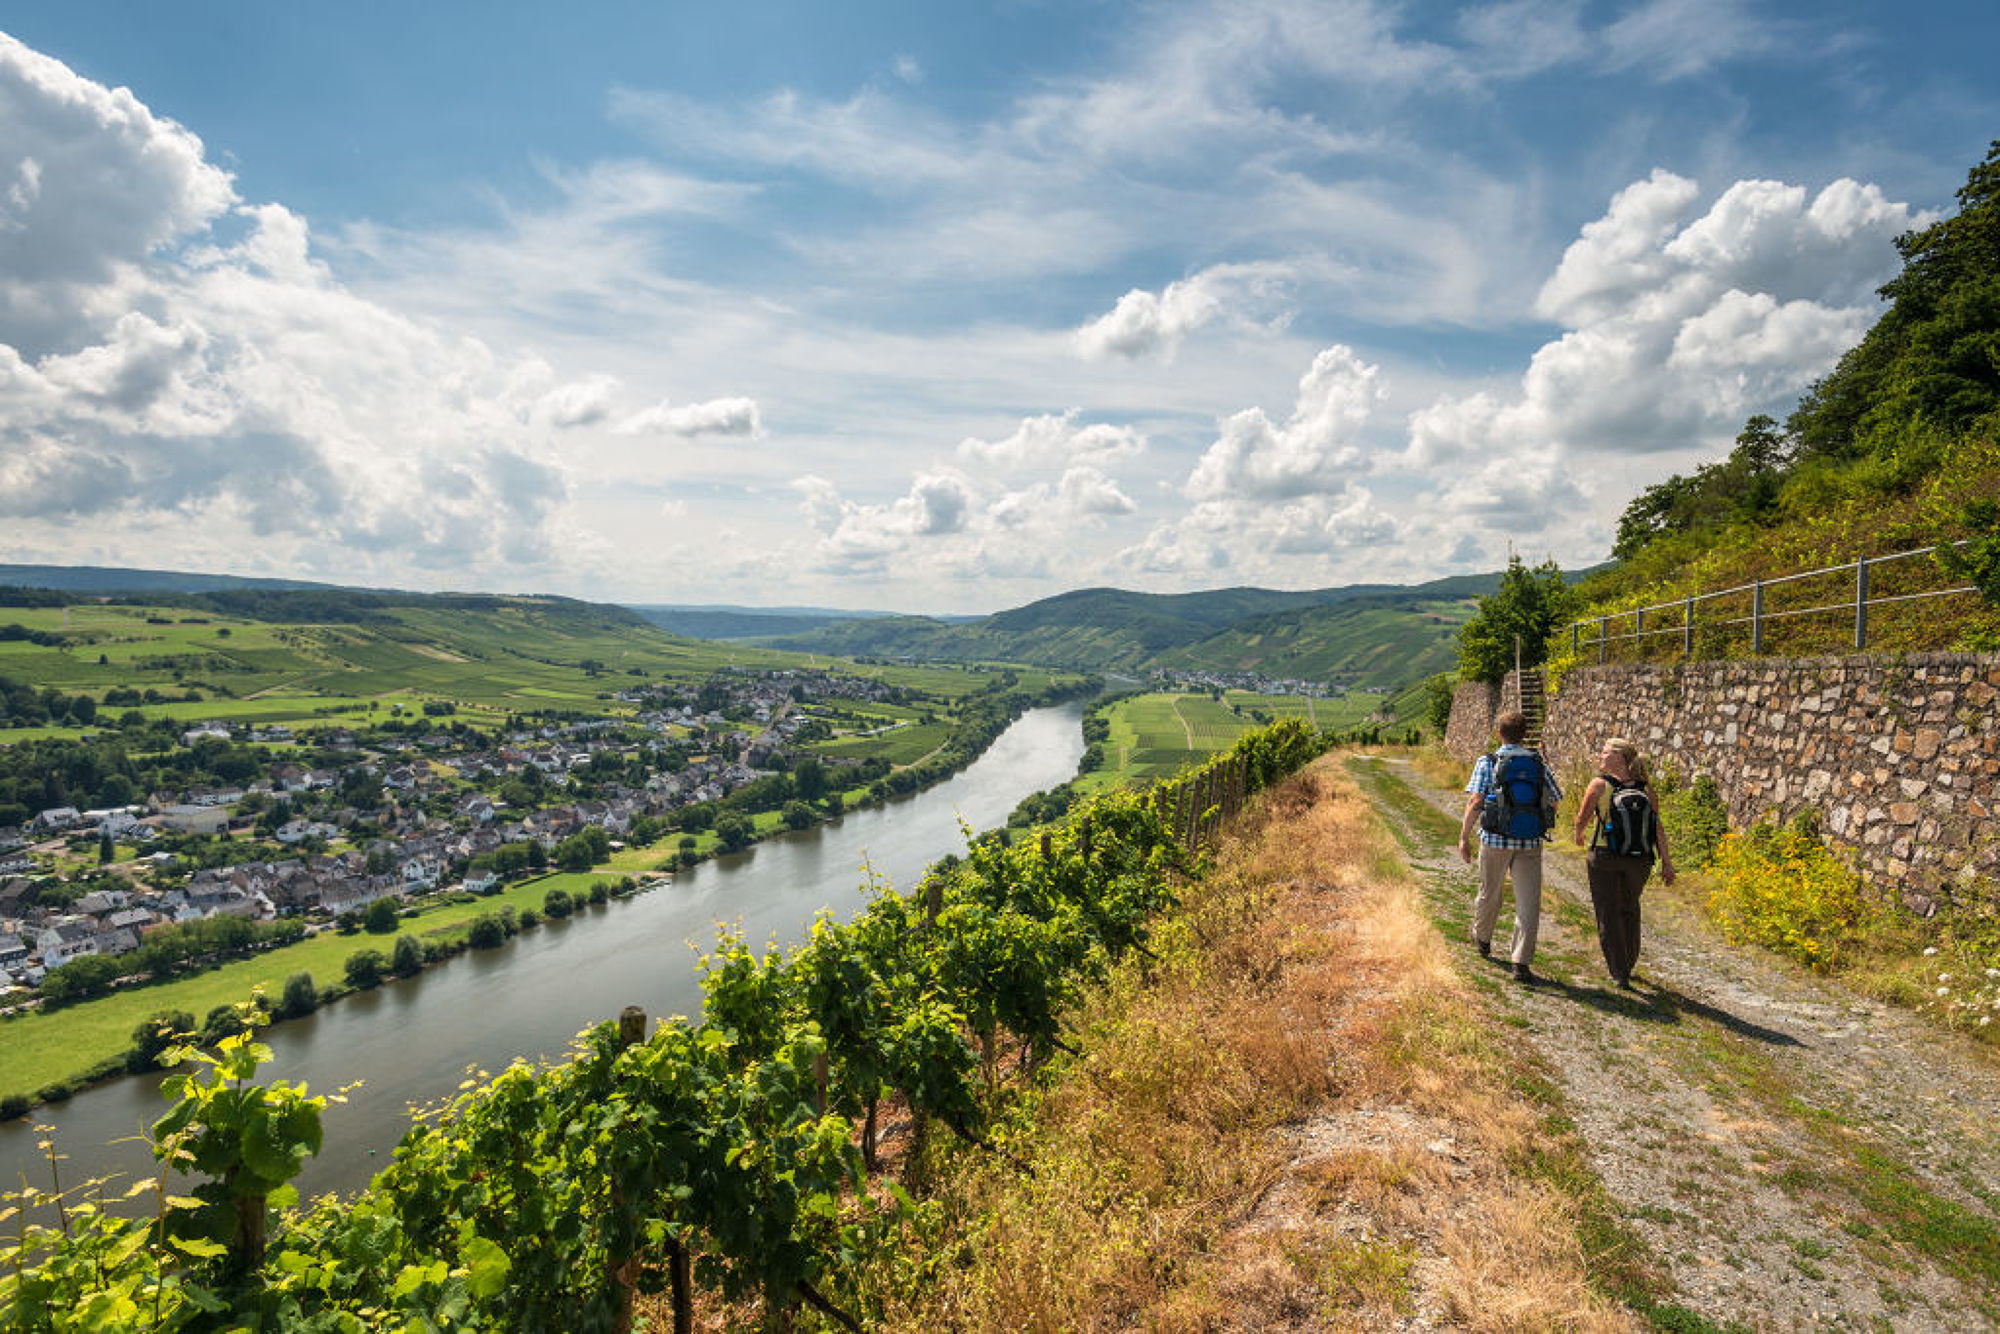 Hiking on the Moselsteig trail near Brauneberg, Moselle